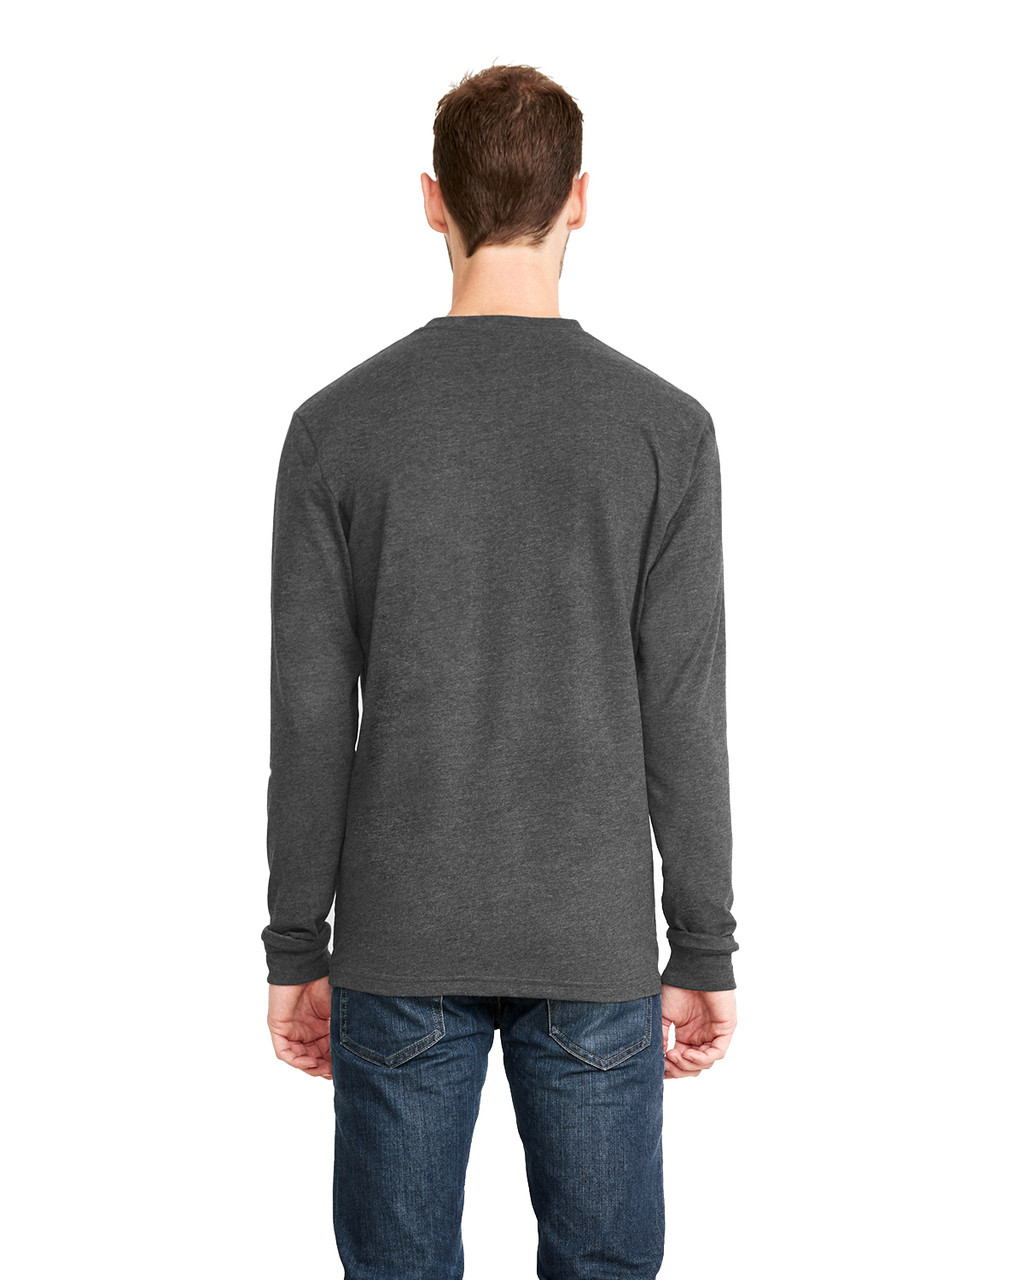 Heather Metal, Back - 6411 Next Level Unisex Sueded Long-Sleeve Crew Shirt | Blankclothing.ca